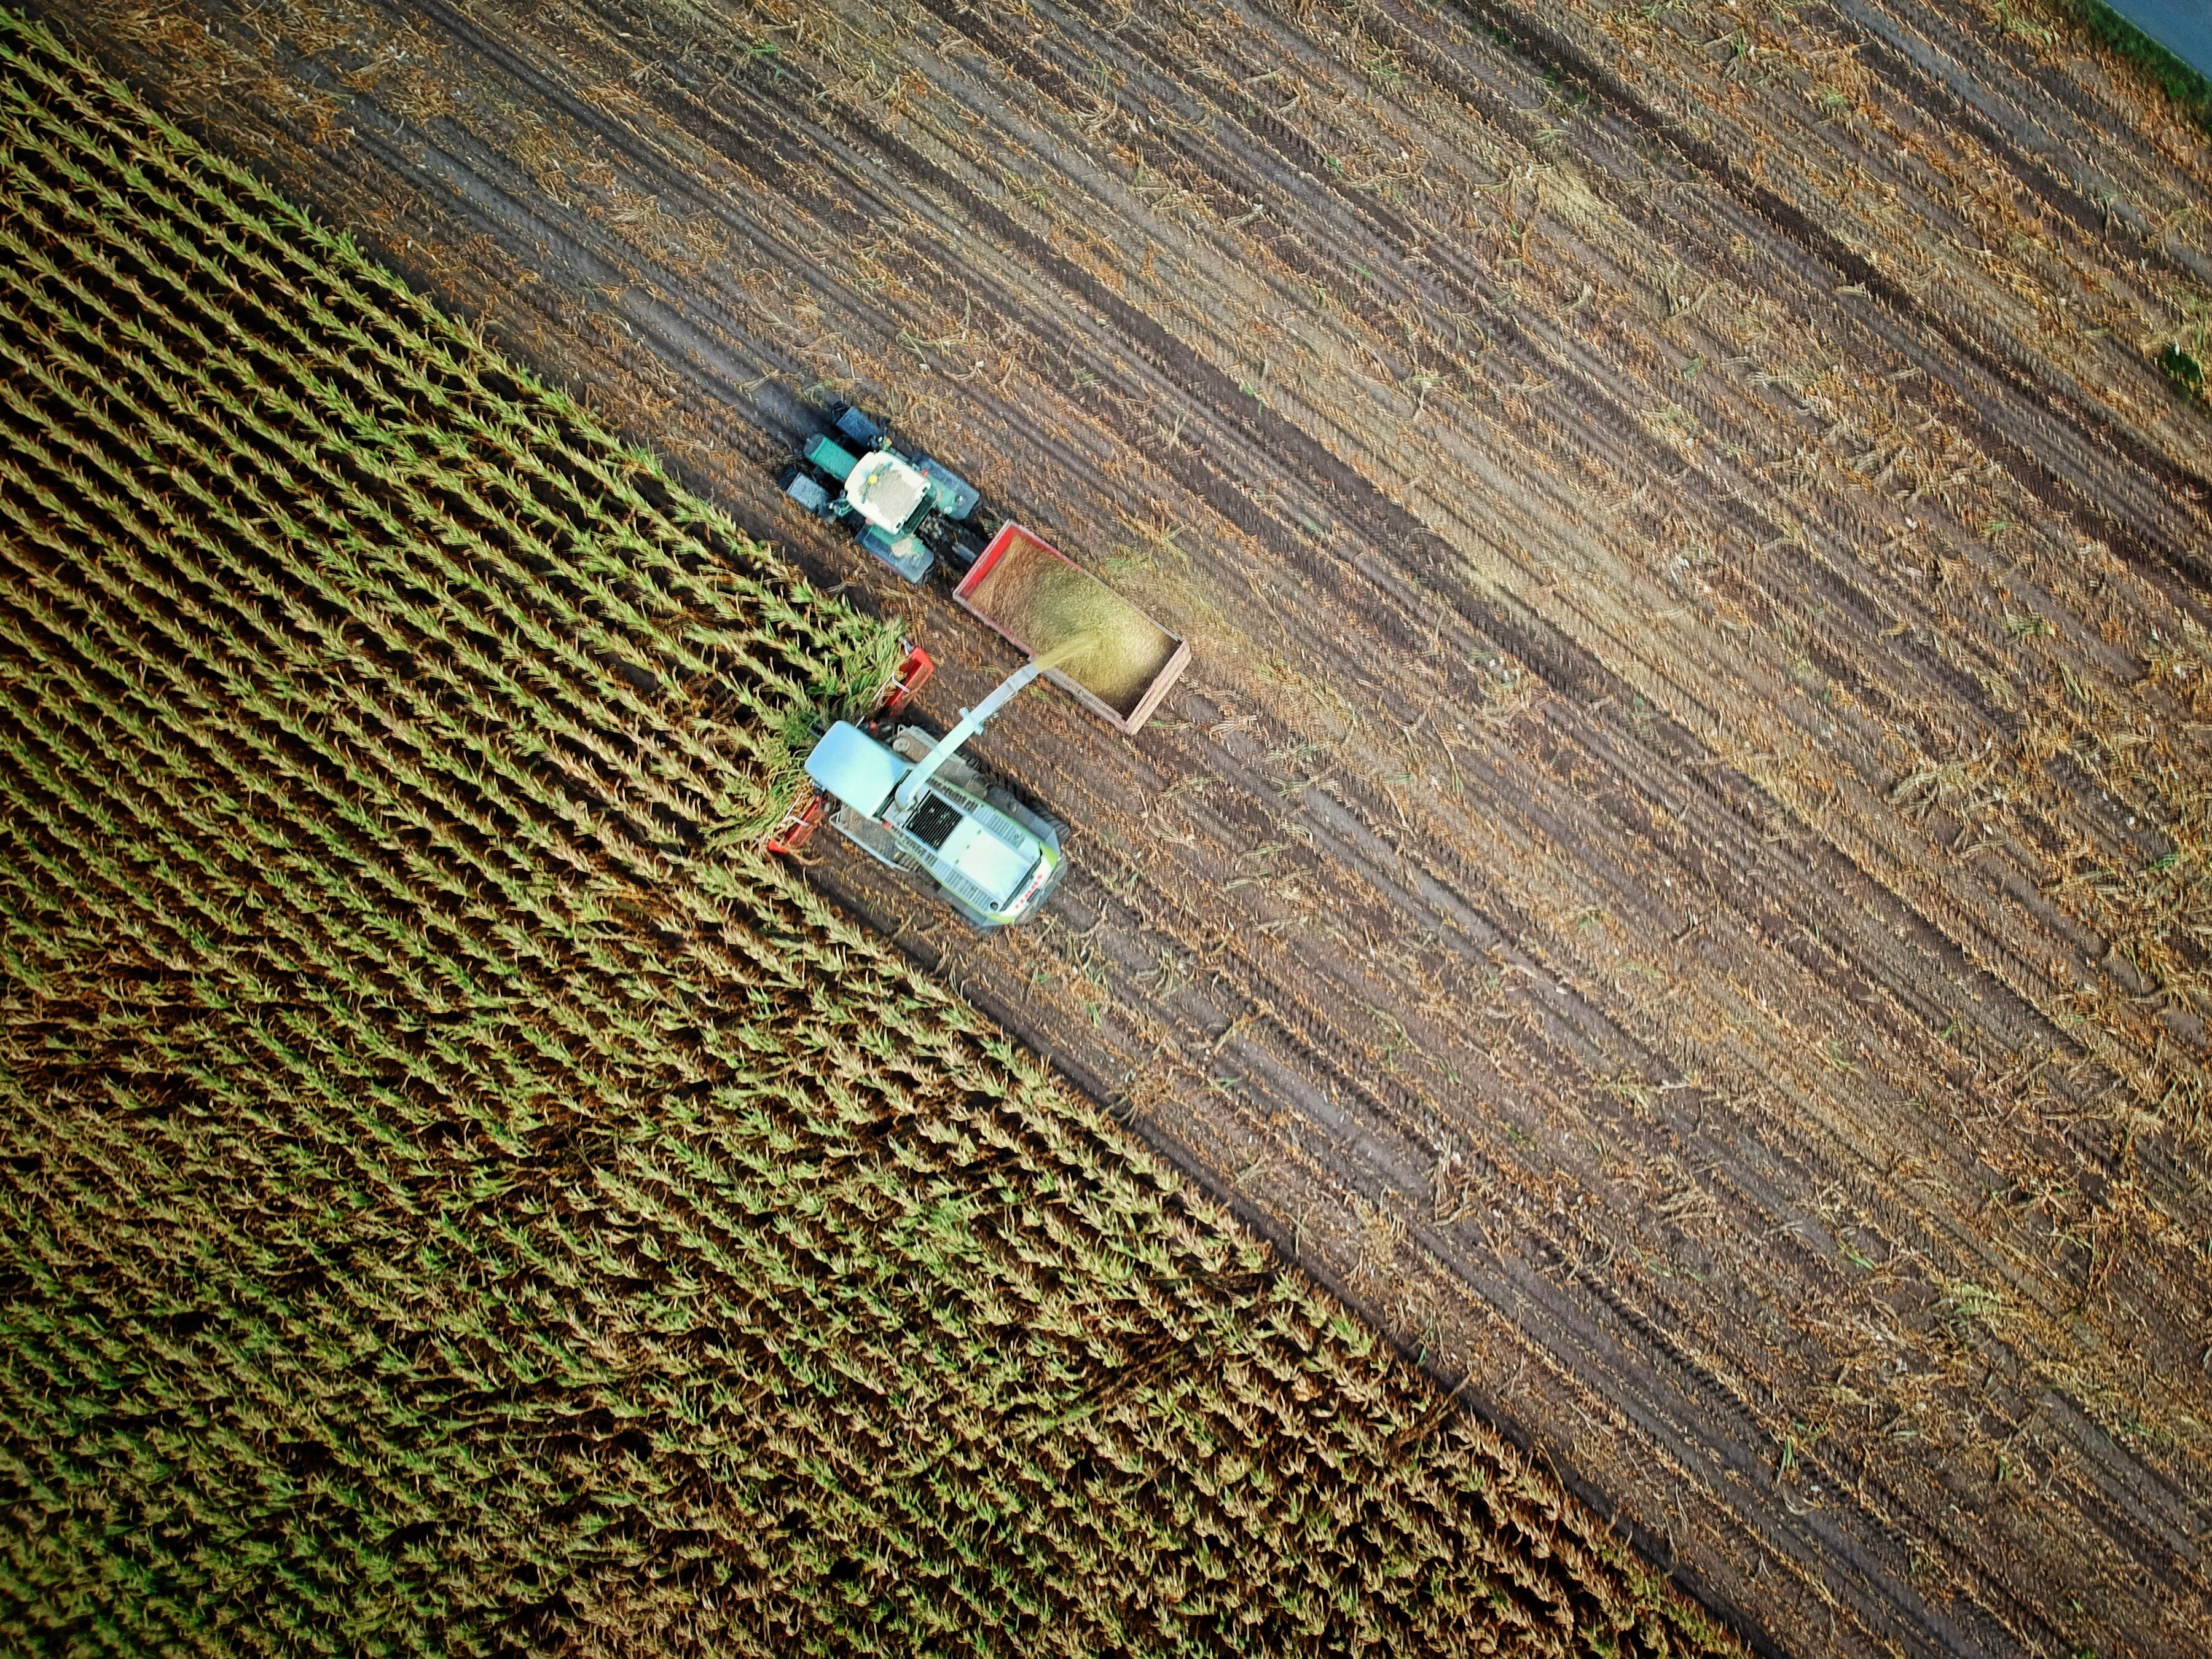 Aerial photo of industrial monocropping